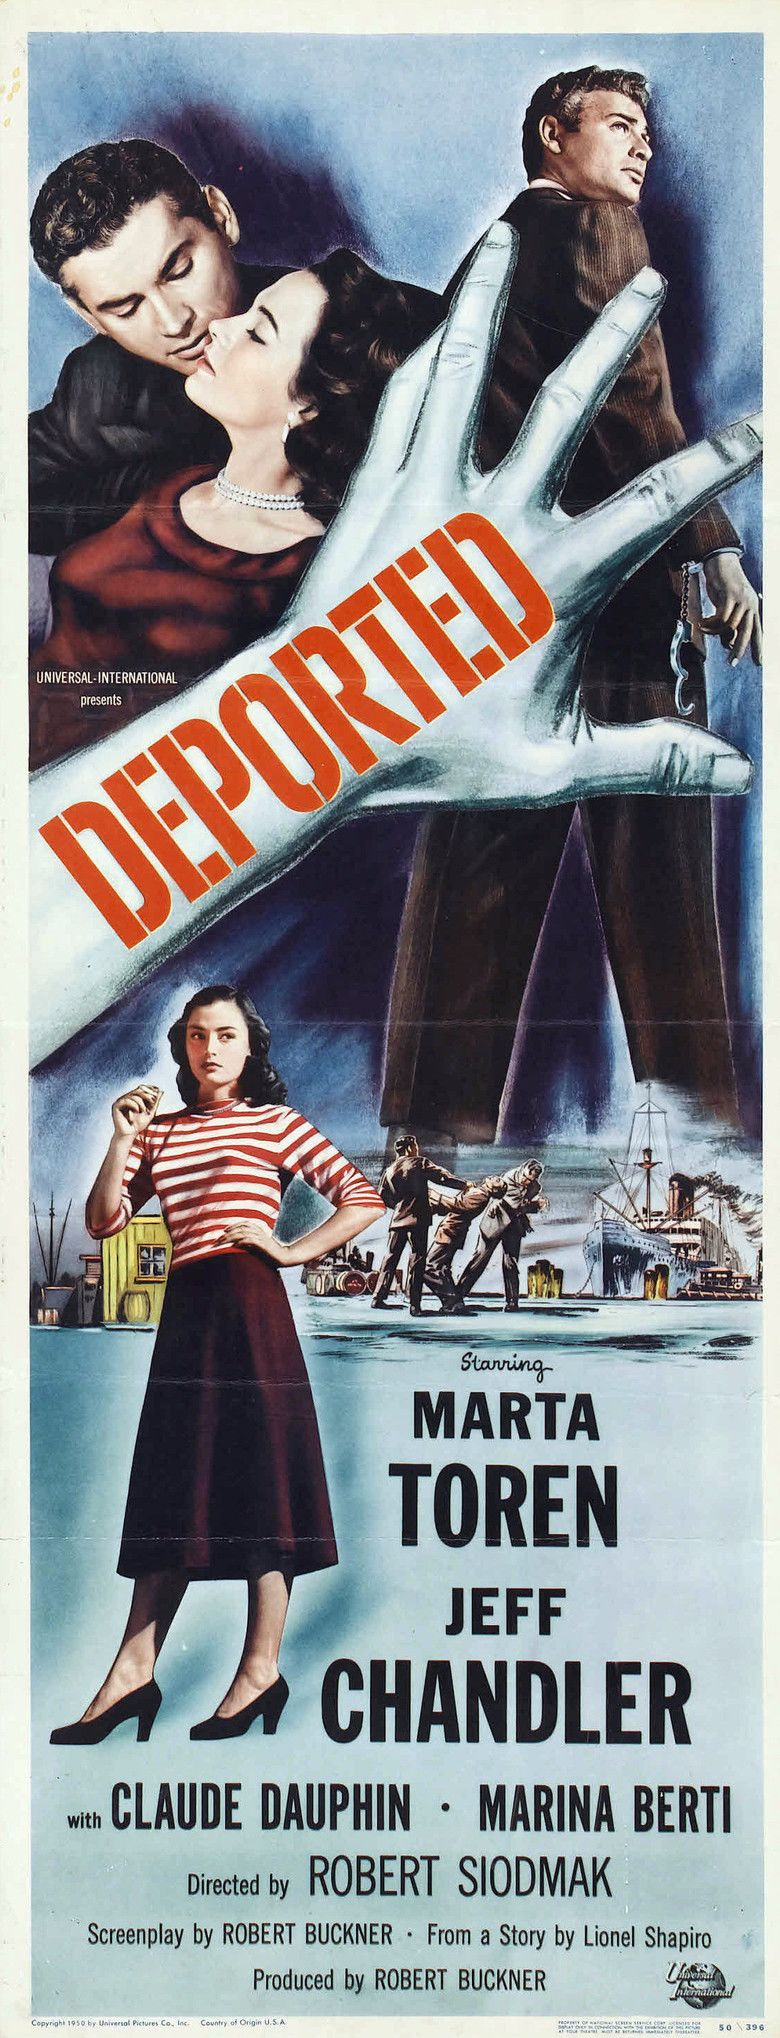 Deported (film) movie poster